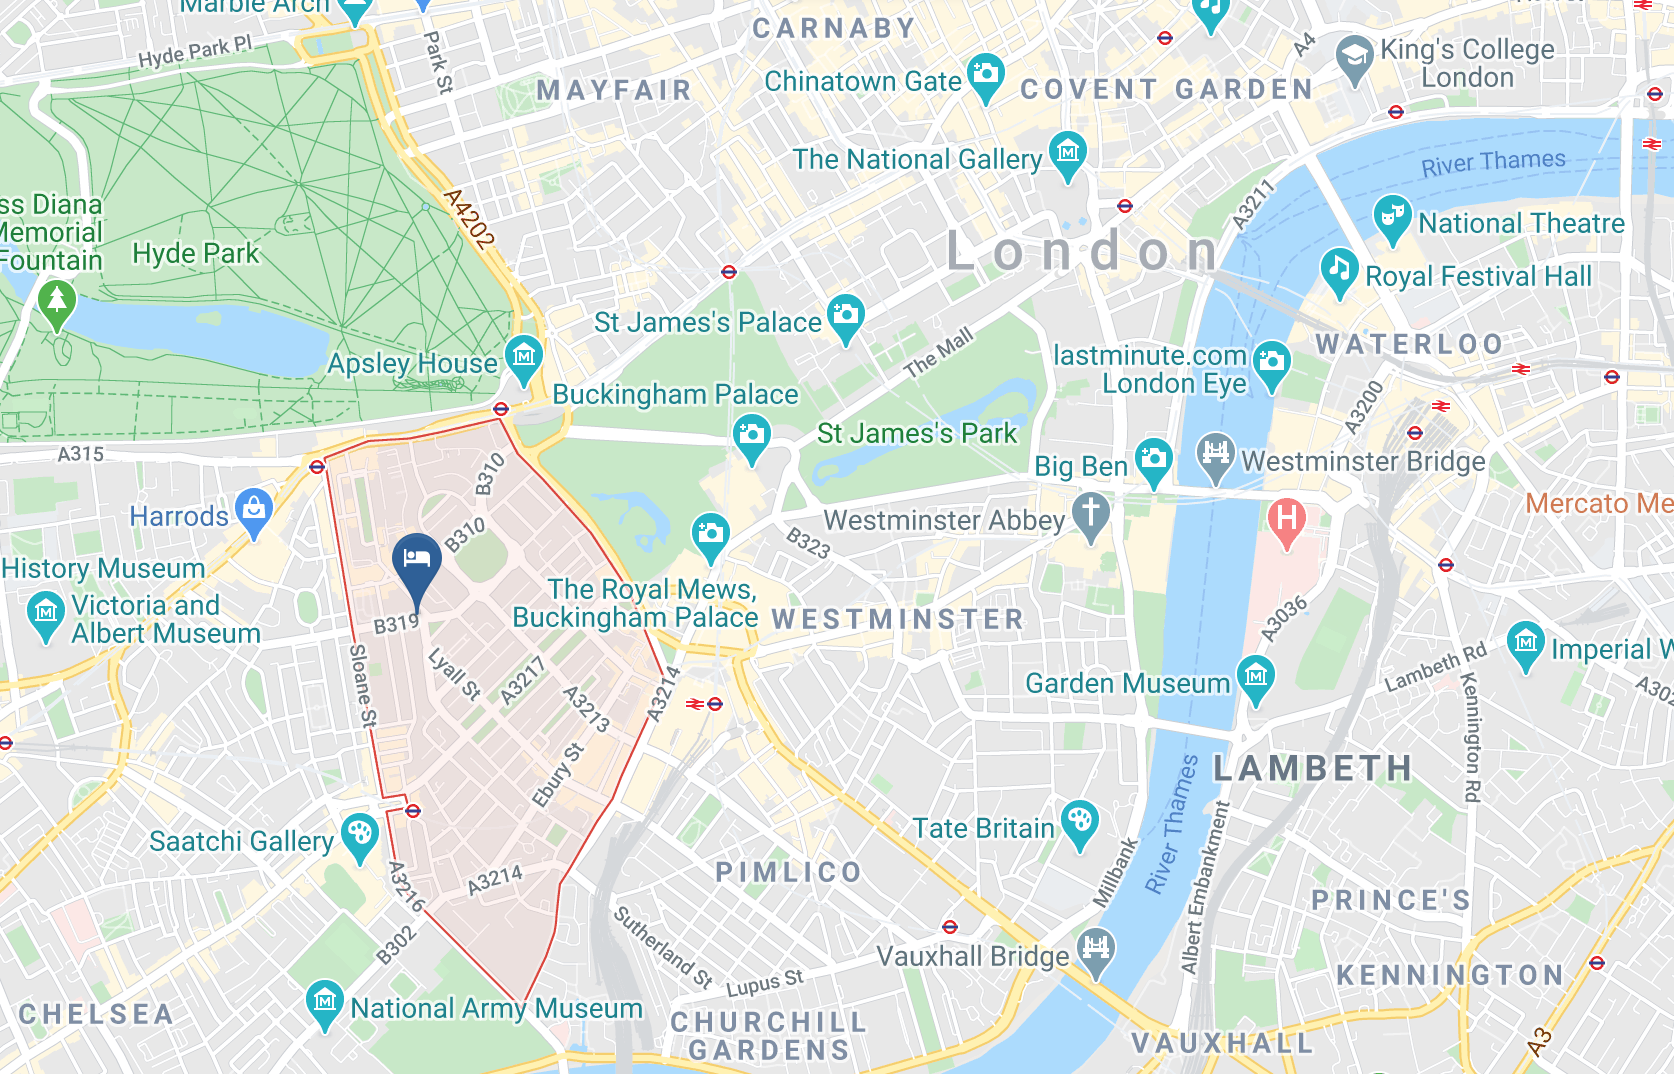 Google Map of The Hari London